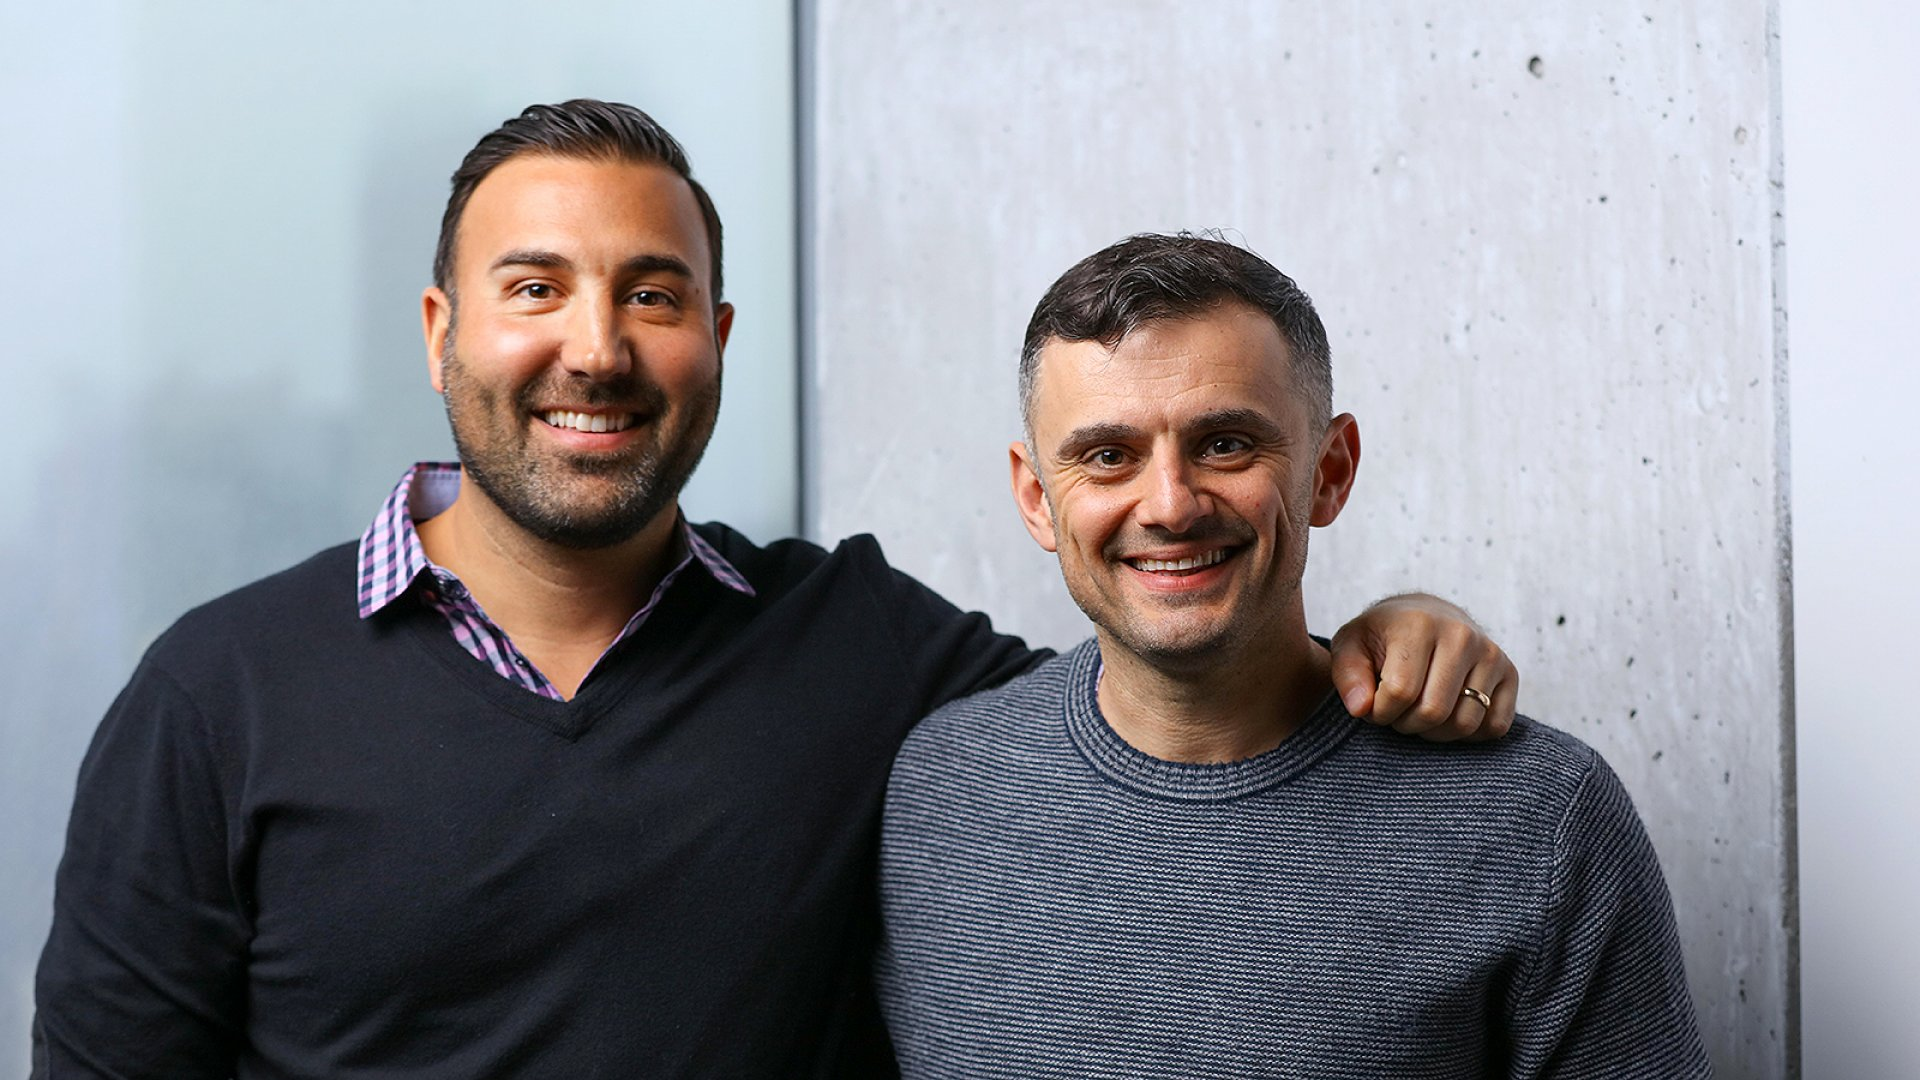 From left: Ryan Harwood, CEO of The Gallery and PureWow, and Gary Vaynerchuk, CEO of VaynerX and VaynerMedia